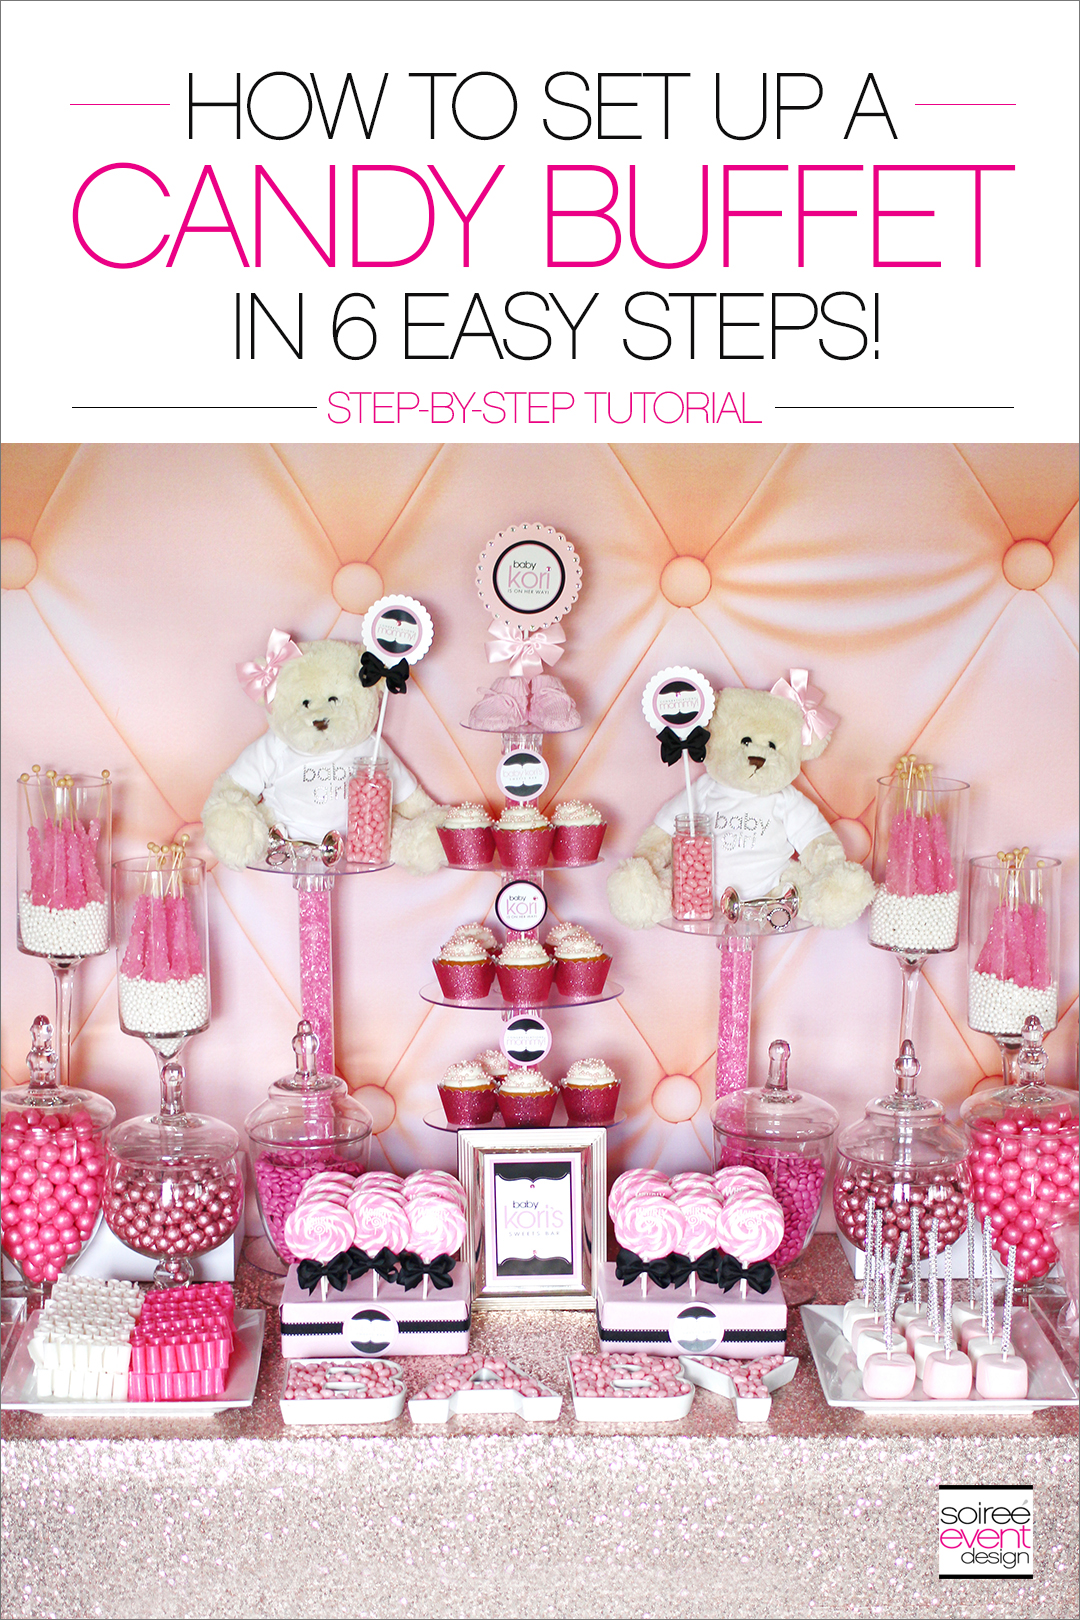 How To Set Up A Candy Buffet - Soiree Event Design